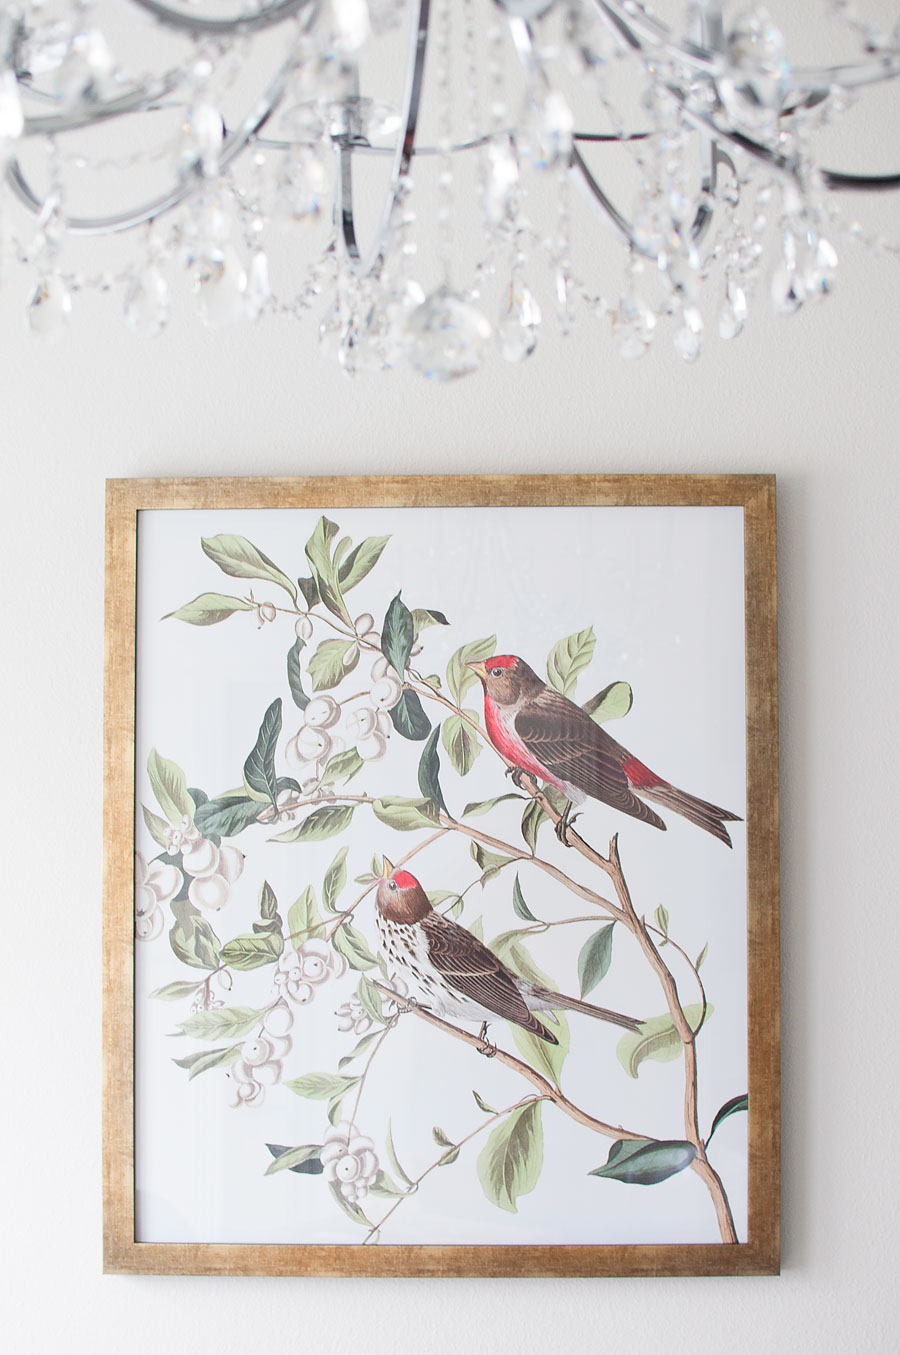 Large audubon bird print in a gold frame